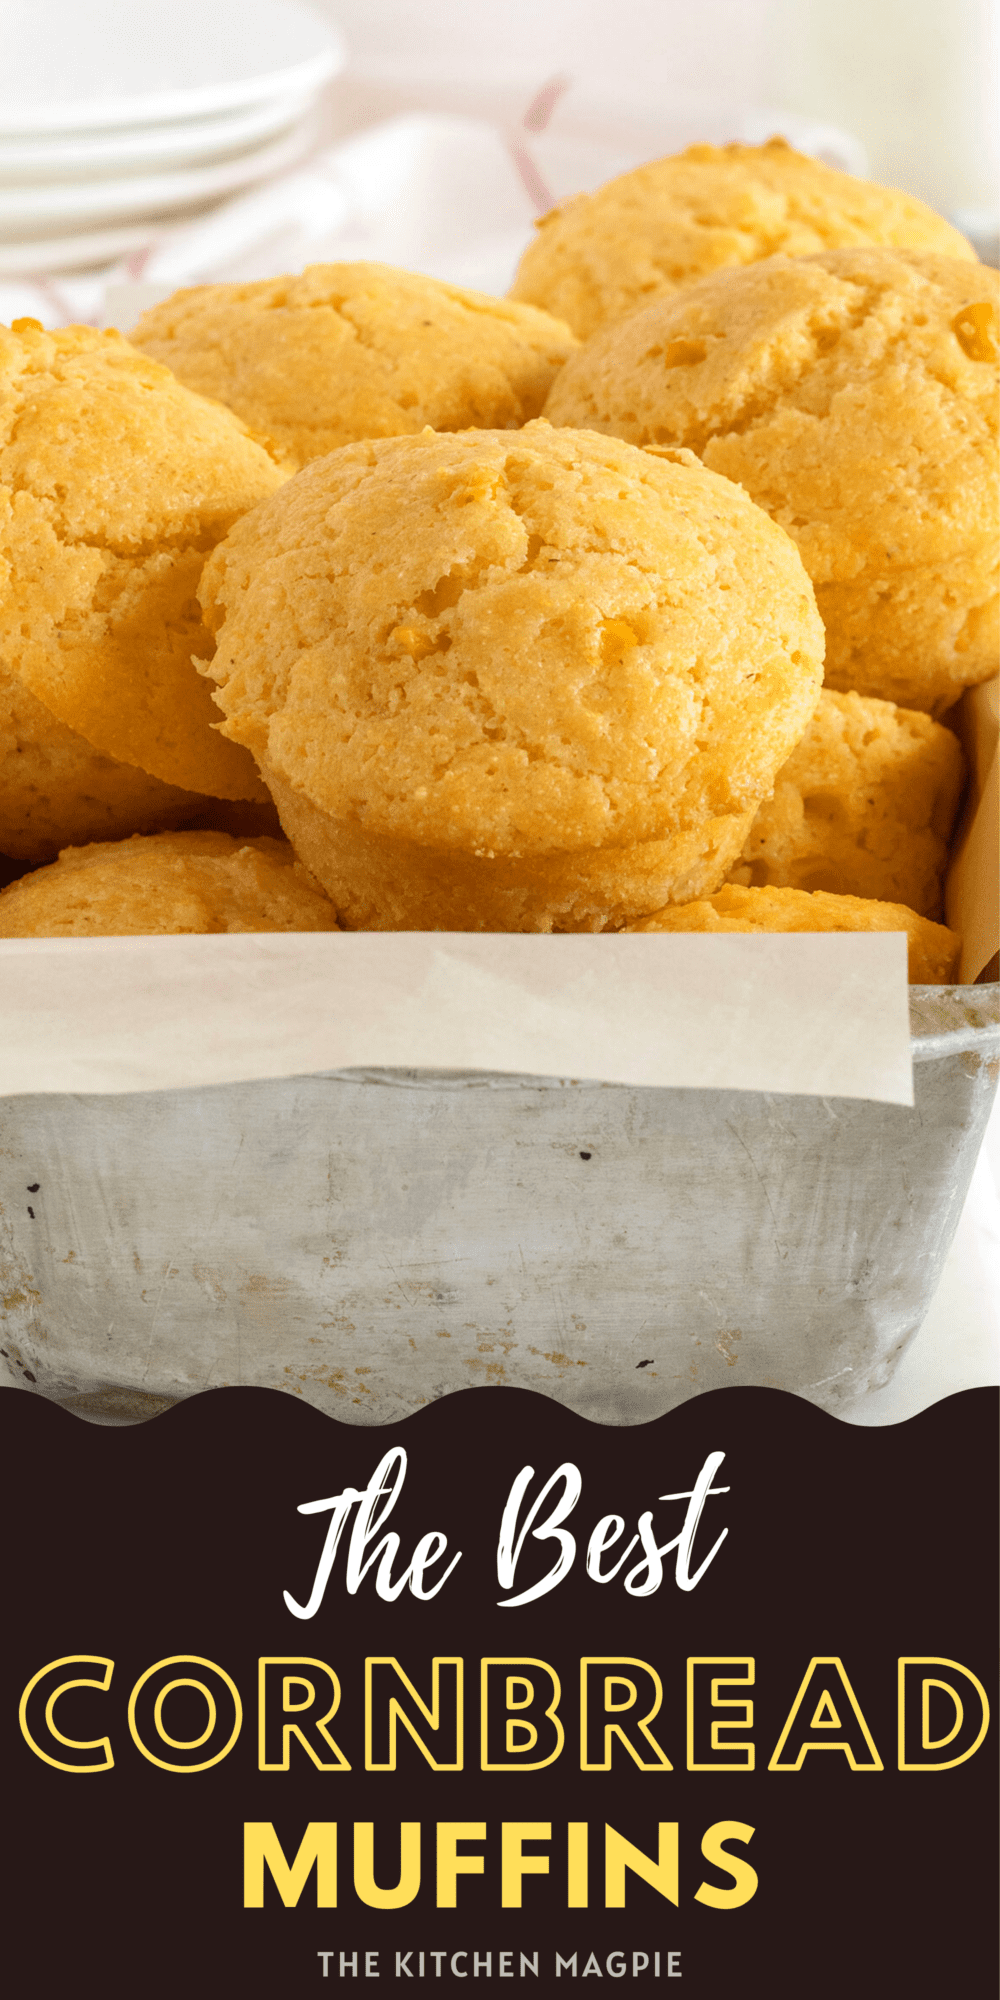 These easy, made-from-scratch cornbread muffins are the perfect delicious side for soups, chilis and stews! You can adjust the sweetness as desired.